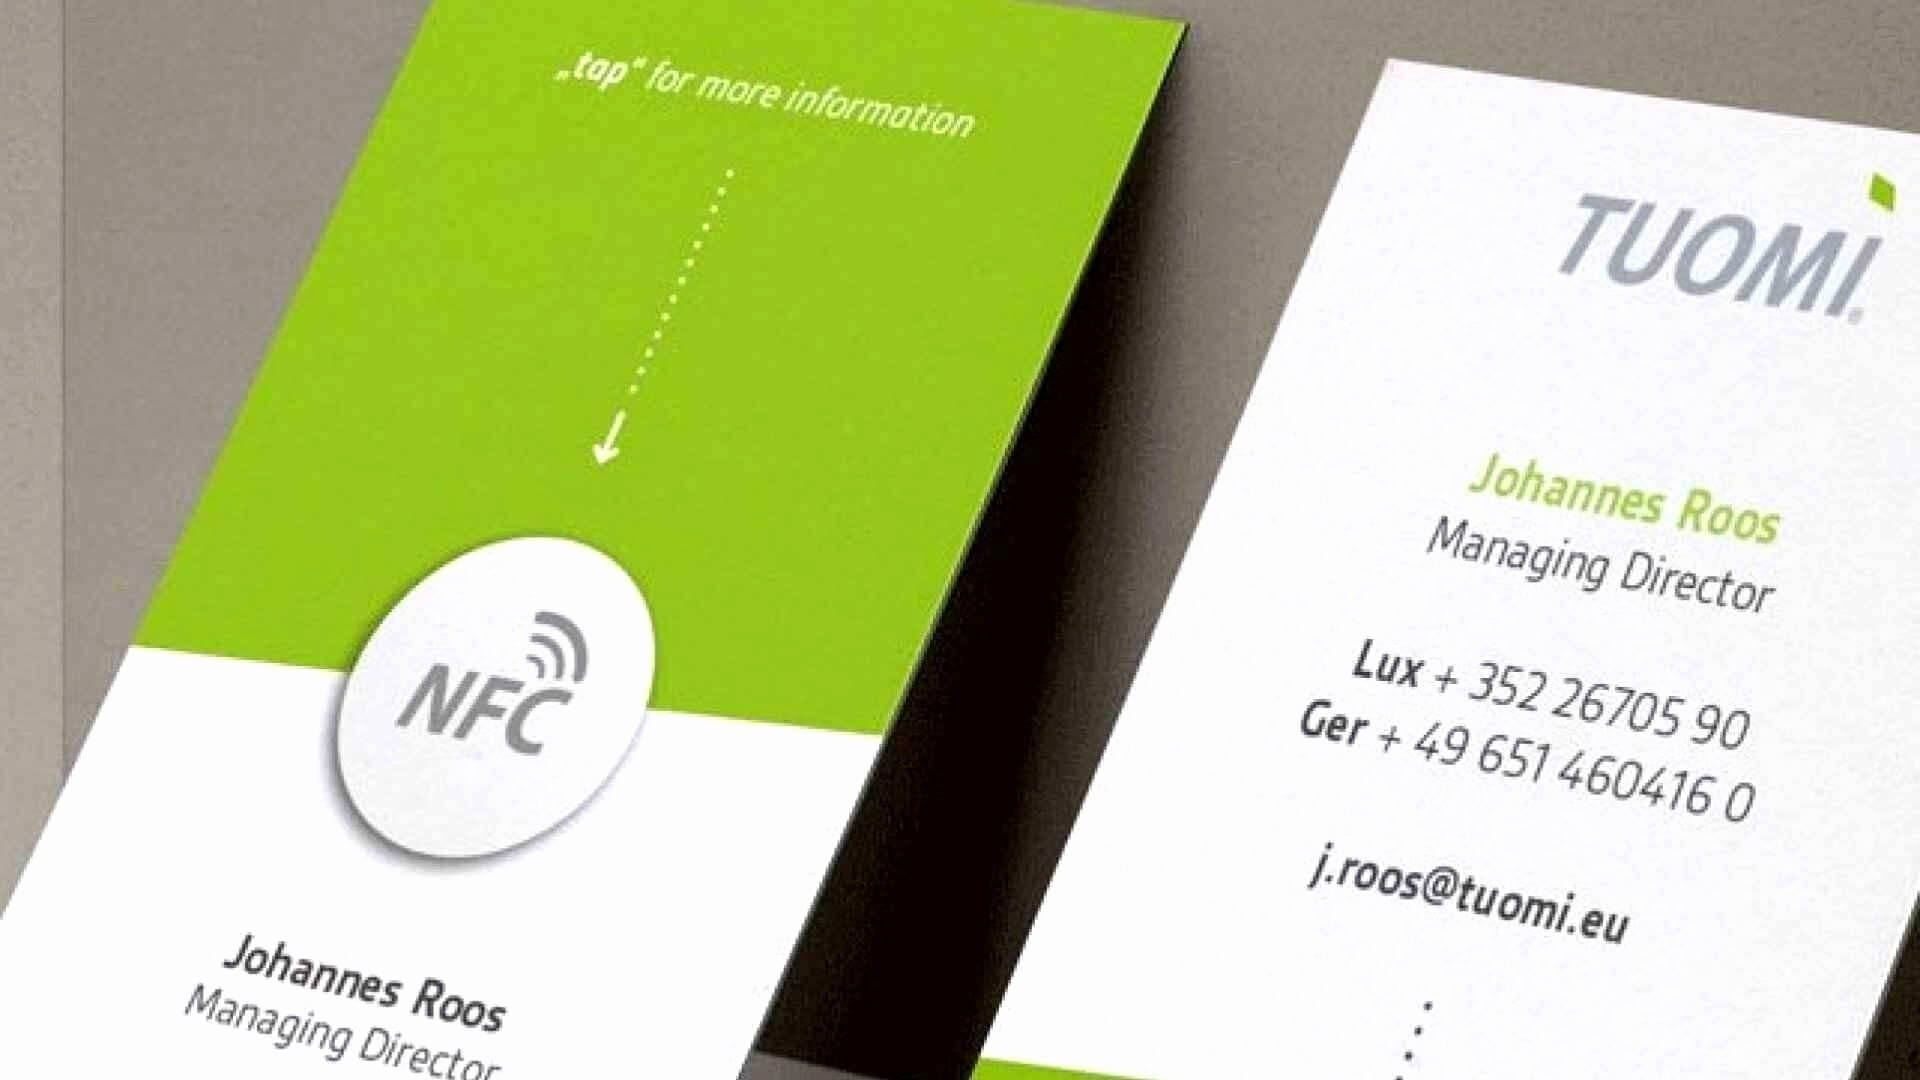 Office Max Business Card Template Officemax Mabusiness intended for Office Max Business Card Template